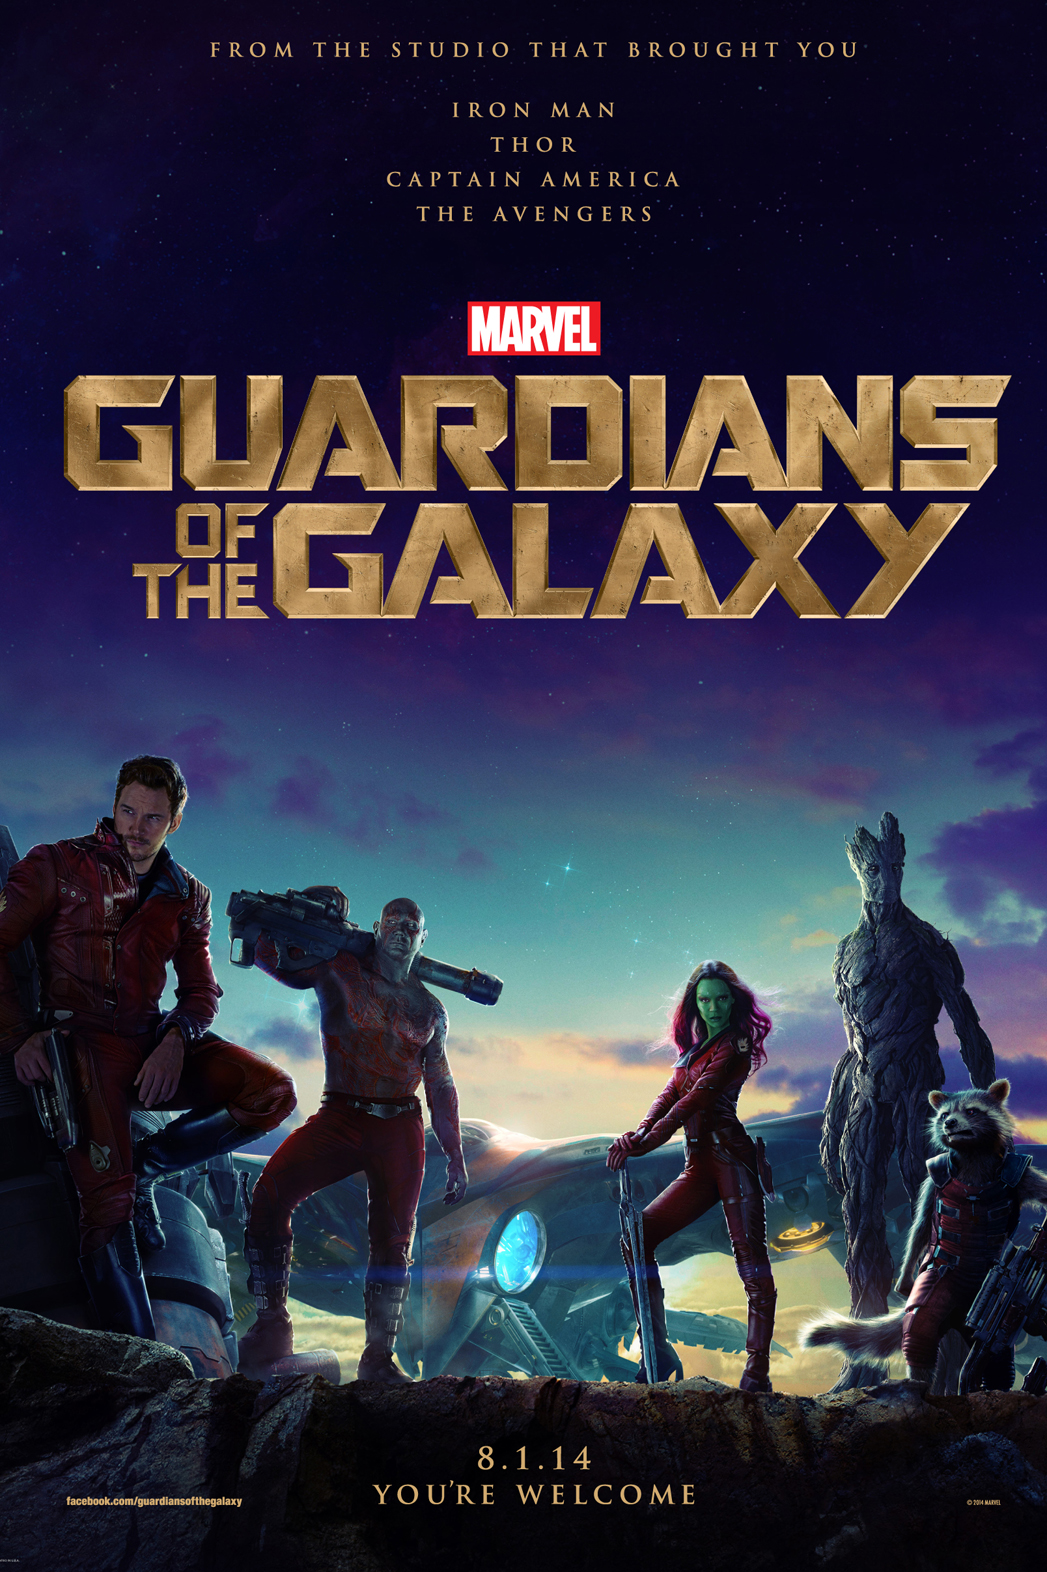 Guardians of the Galaxy Poster - P 2014